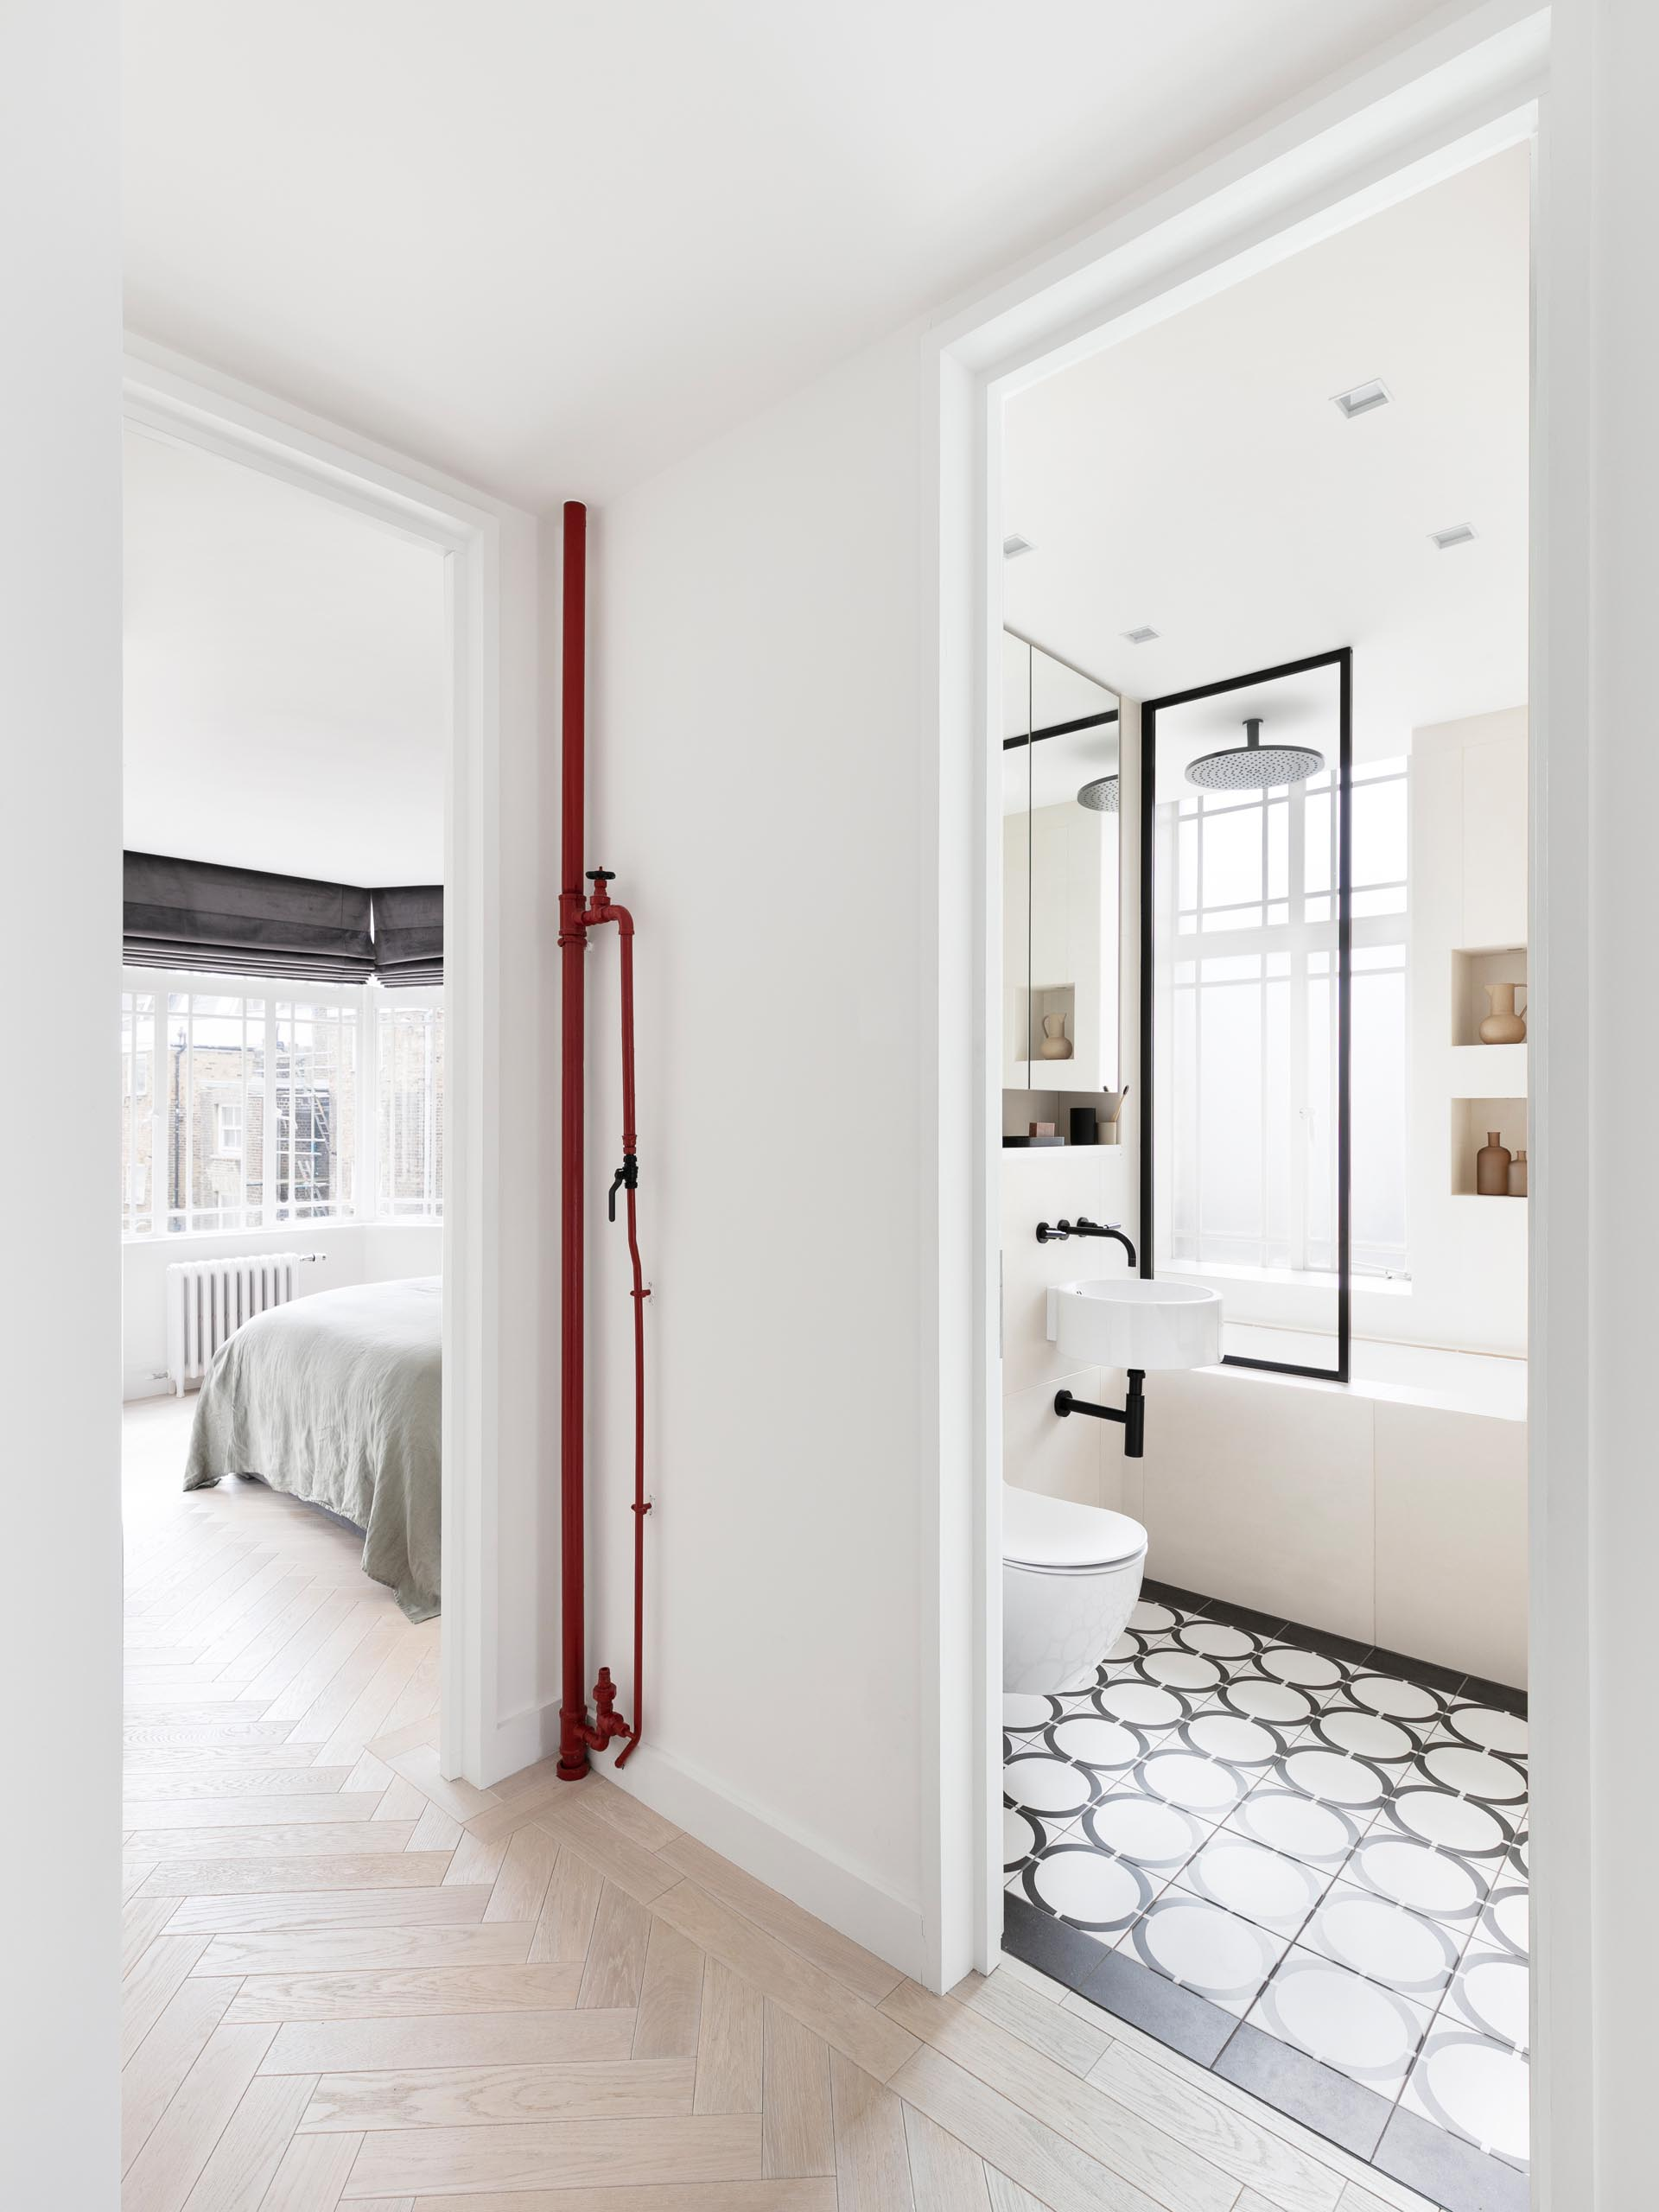 Space saving pocket doors have been installed throughout this modern apartment, like for the bedrooms and bathroom.